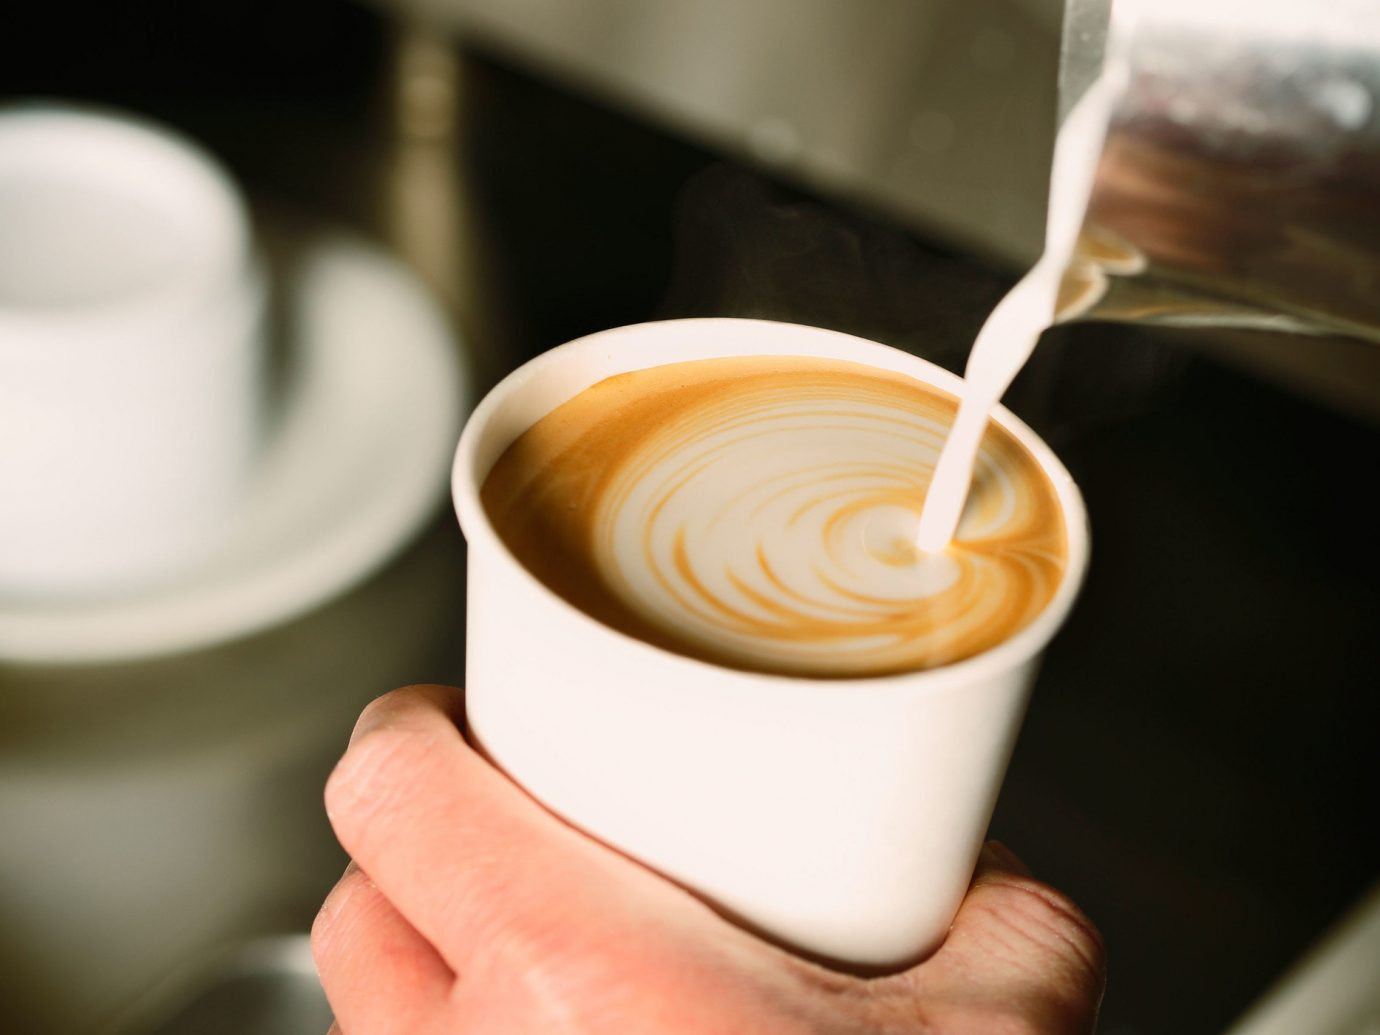 cup Food + Drink Influencers + Tastemakers Offbeat Style + Design Travel Trends Trip Ideas Weekend Getaways coffee indoor beverage Drink food pastry latte coffee cup breakfast cappuccino coffee milk caffeine espresso caffè macchiato ristretto café au lait flavor